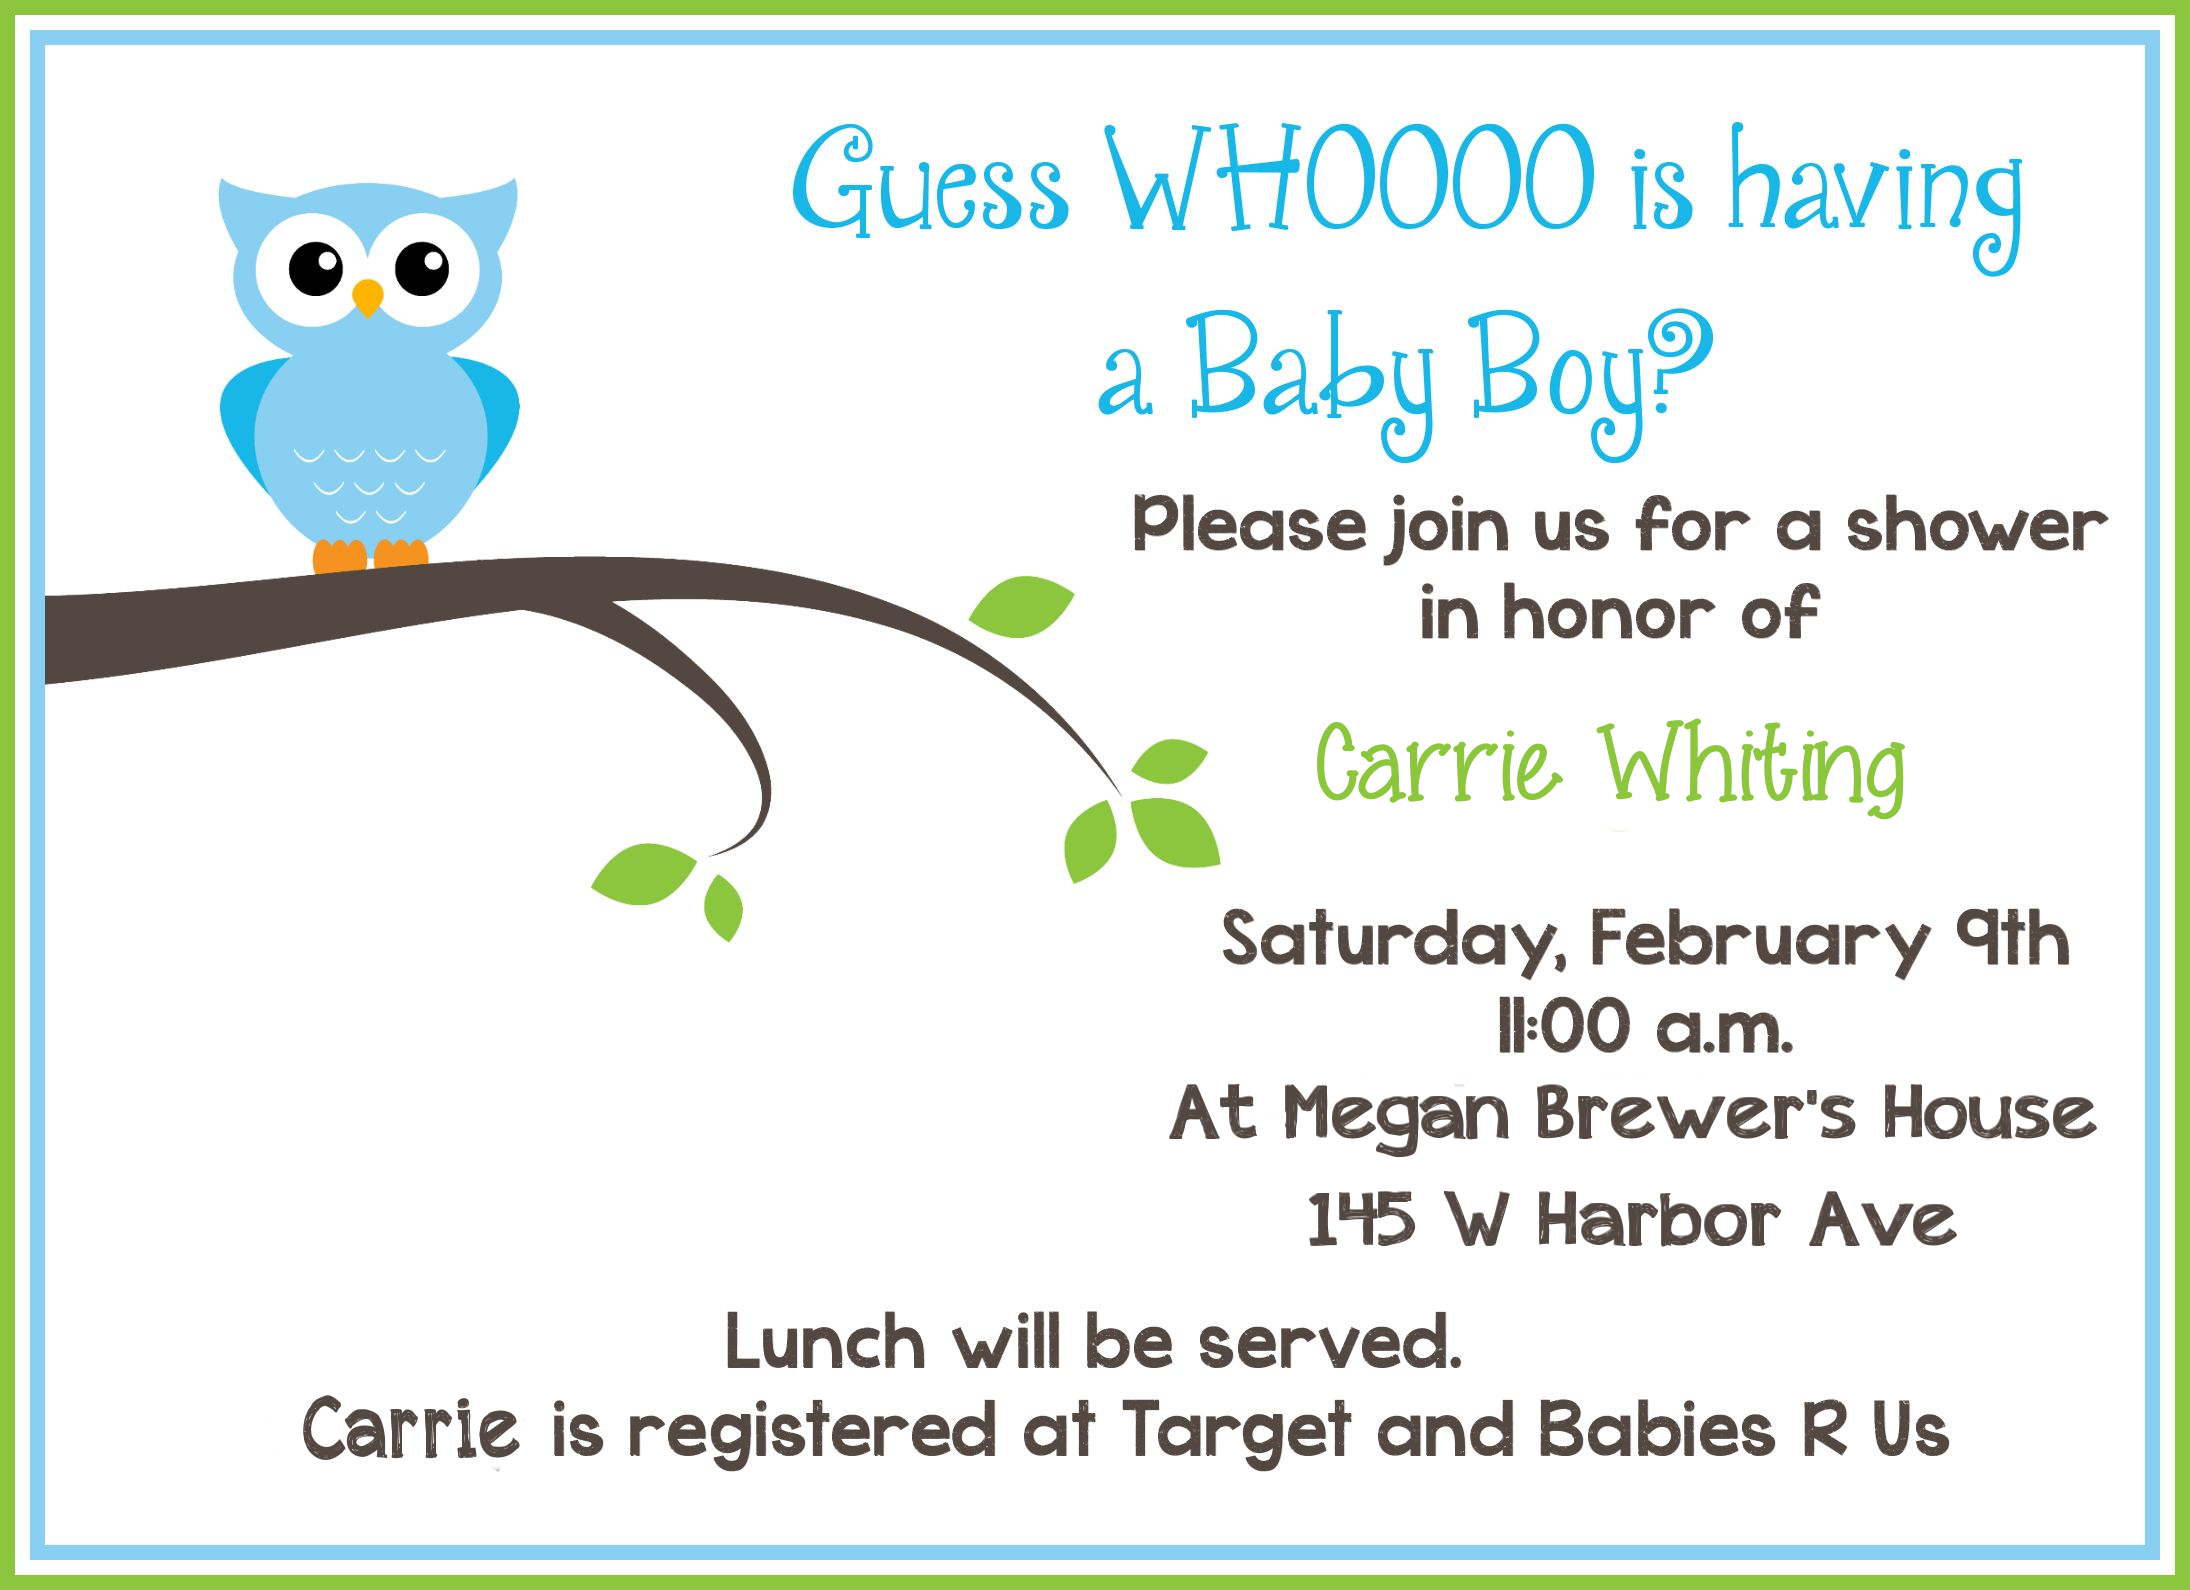 Full Size of Baby Shower:baby Shower Halls With Baby Shower At The Park Plus Recuerdos De Baby Shower Together With Fun Baby Shower Games As Well As Baby Shower Hostess Gifts And Baby Shower Verses Baby Shower Invitation Wording Free Printable Owl Baby Shower Invitations Other Printables Free Printable Owl Baby Shower Invitations Sample